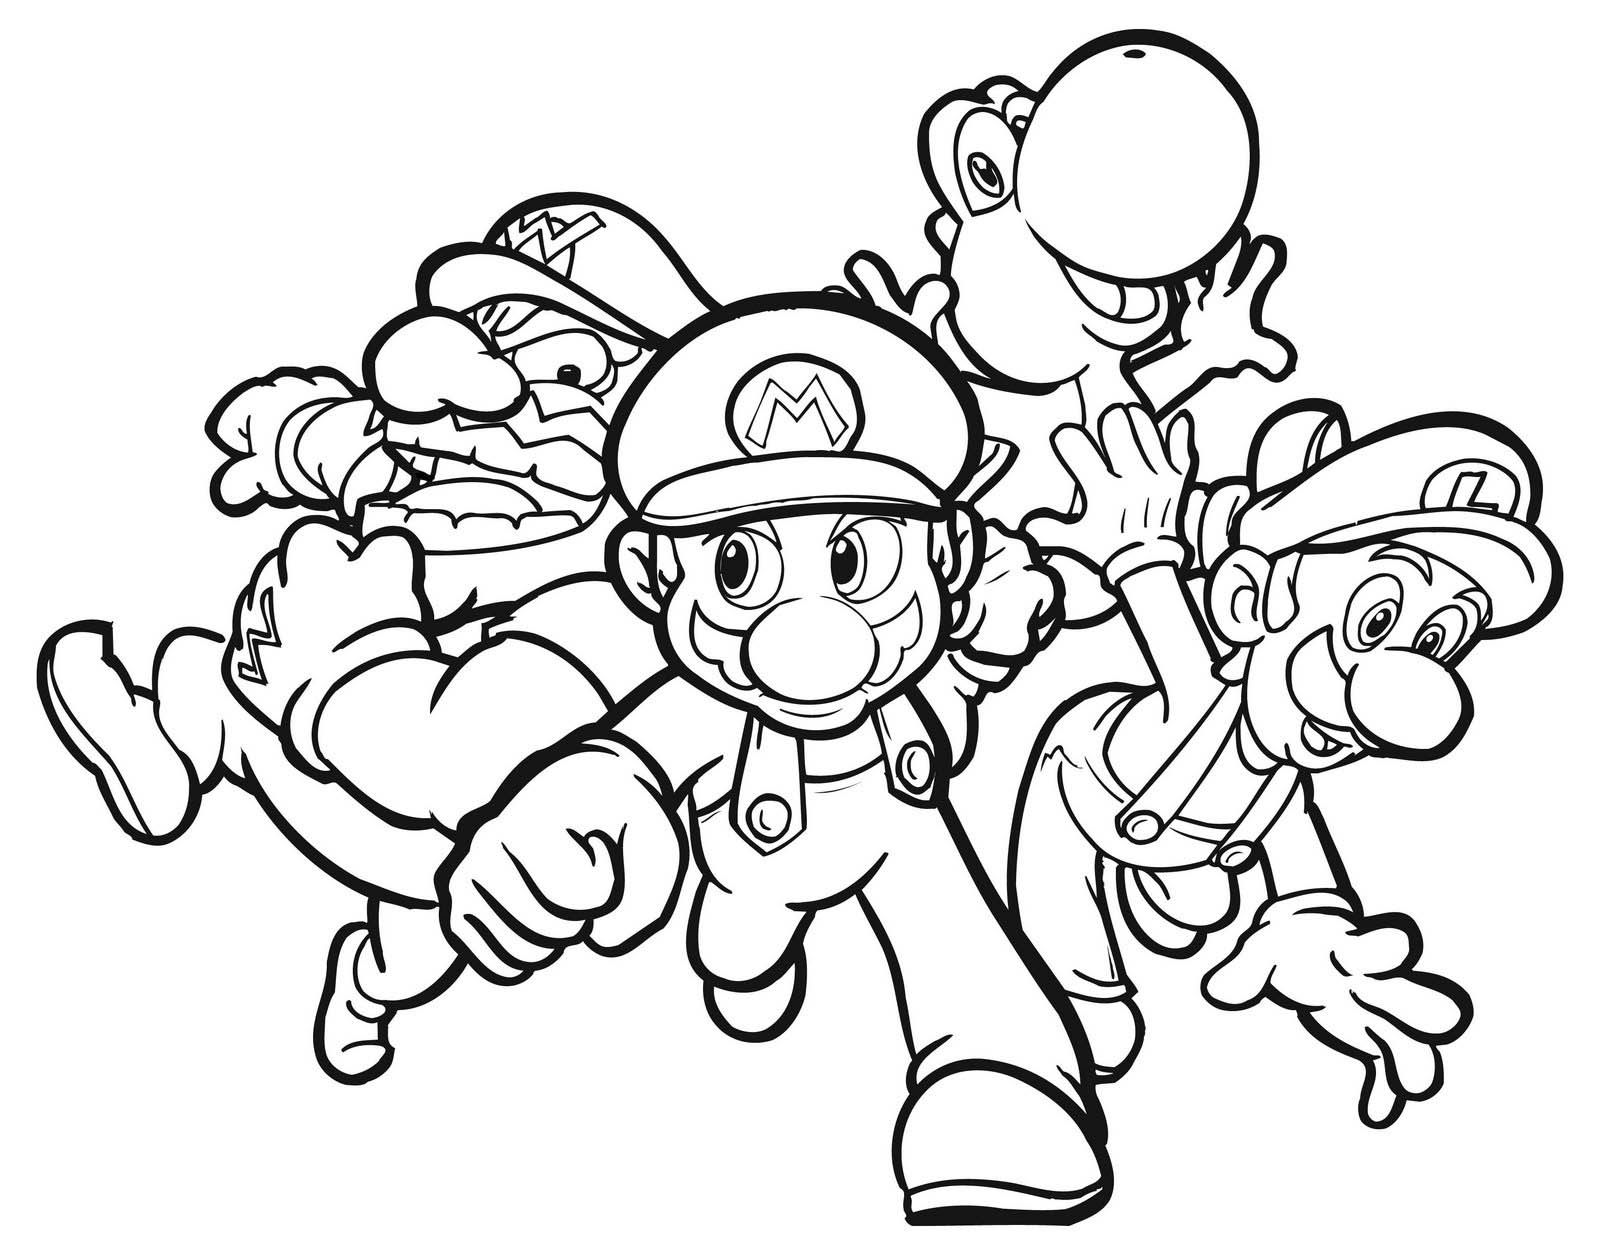 luigi coloring pages to print | mario coloring pages to print | Minister Coloring